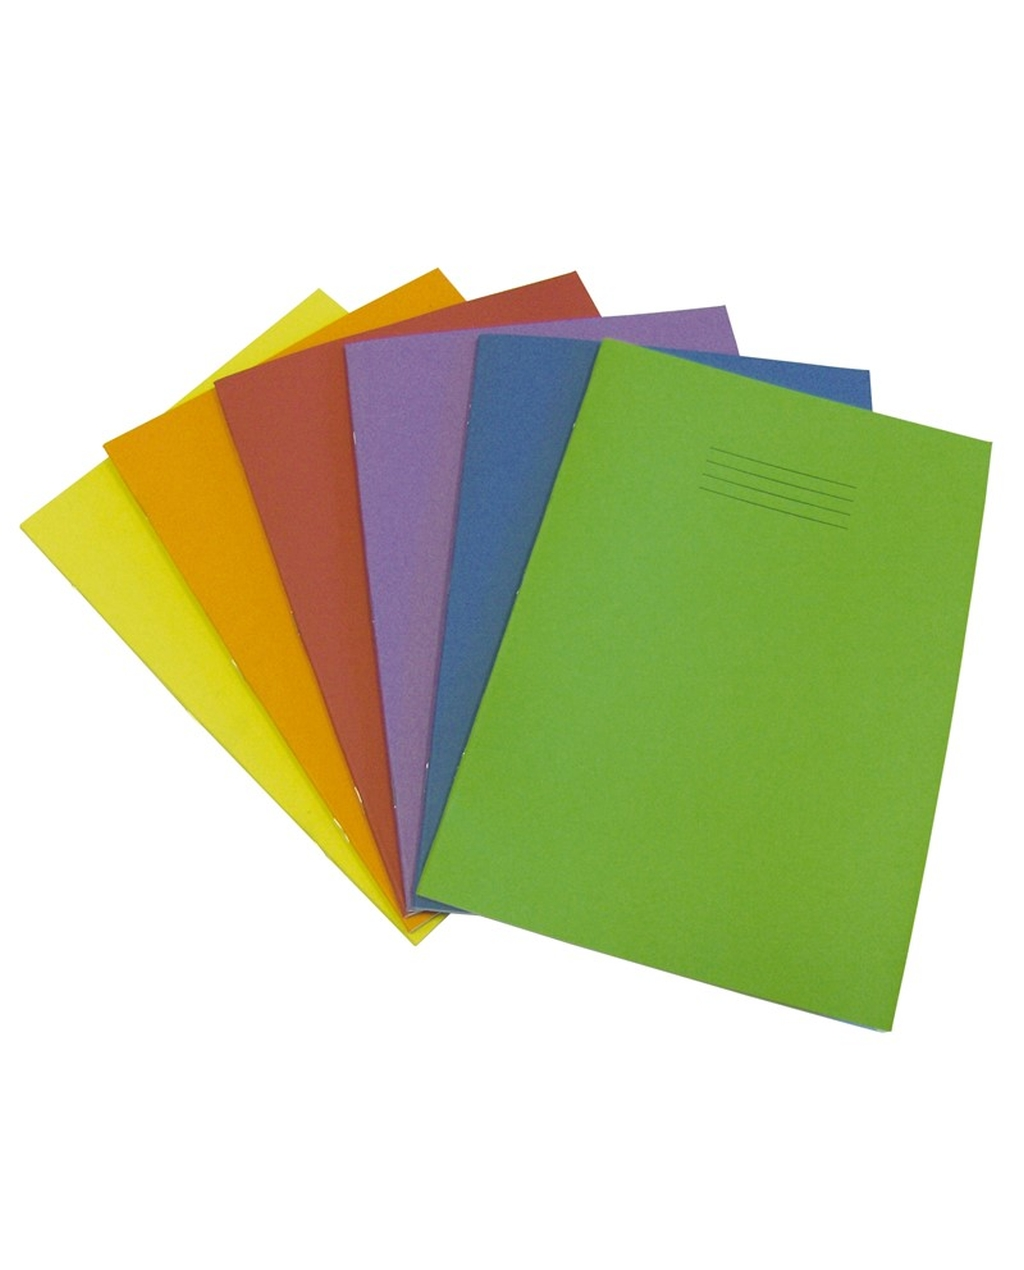 Exercise Book A4 (297 x 210mm) Light Green Cover 8mm Ruled & Margin 60 Pages